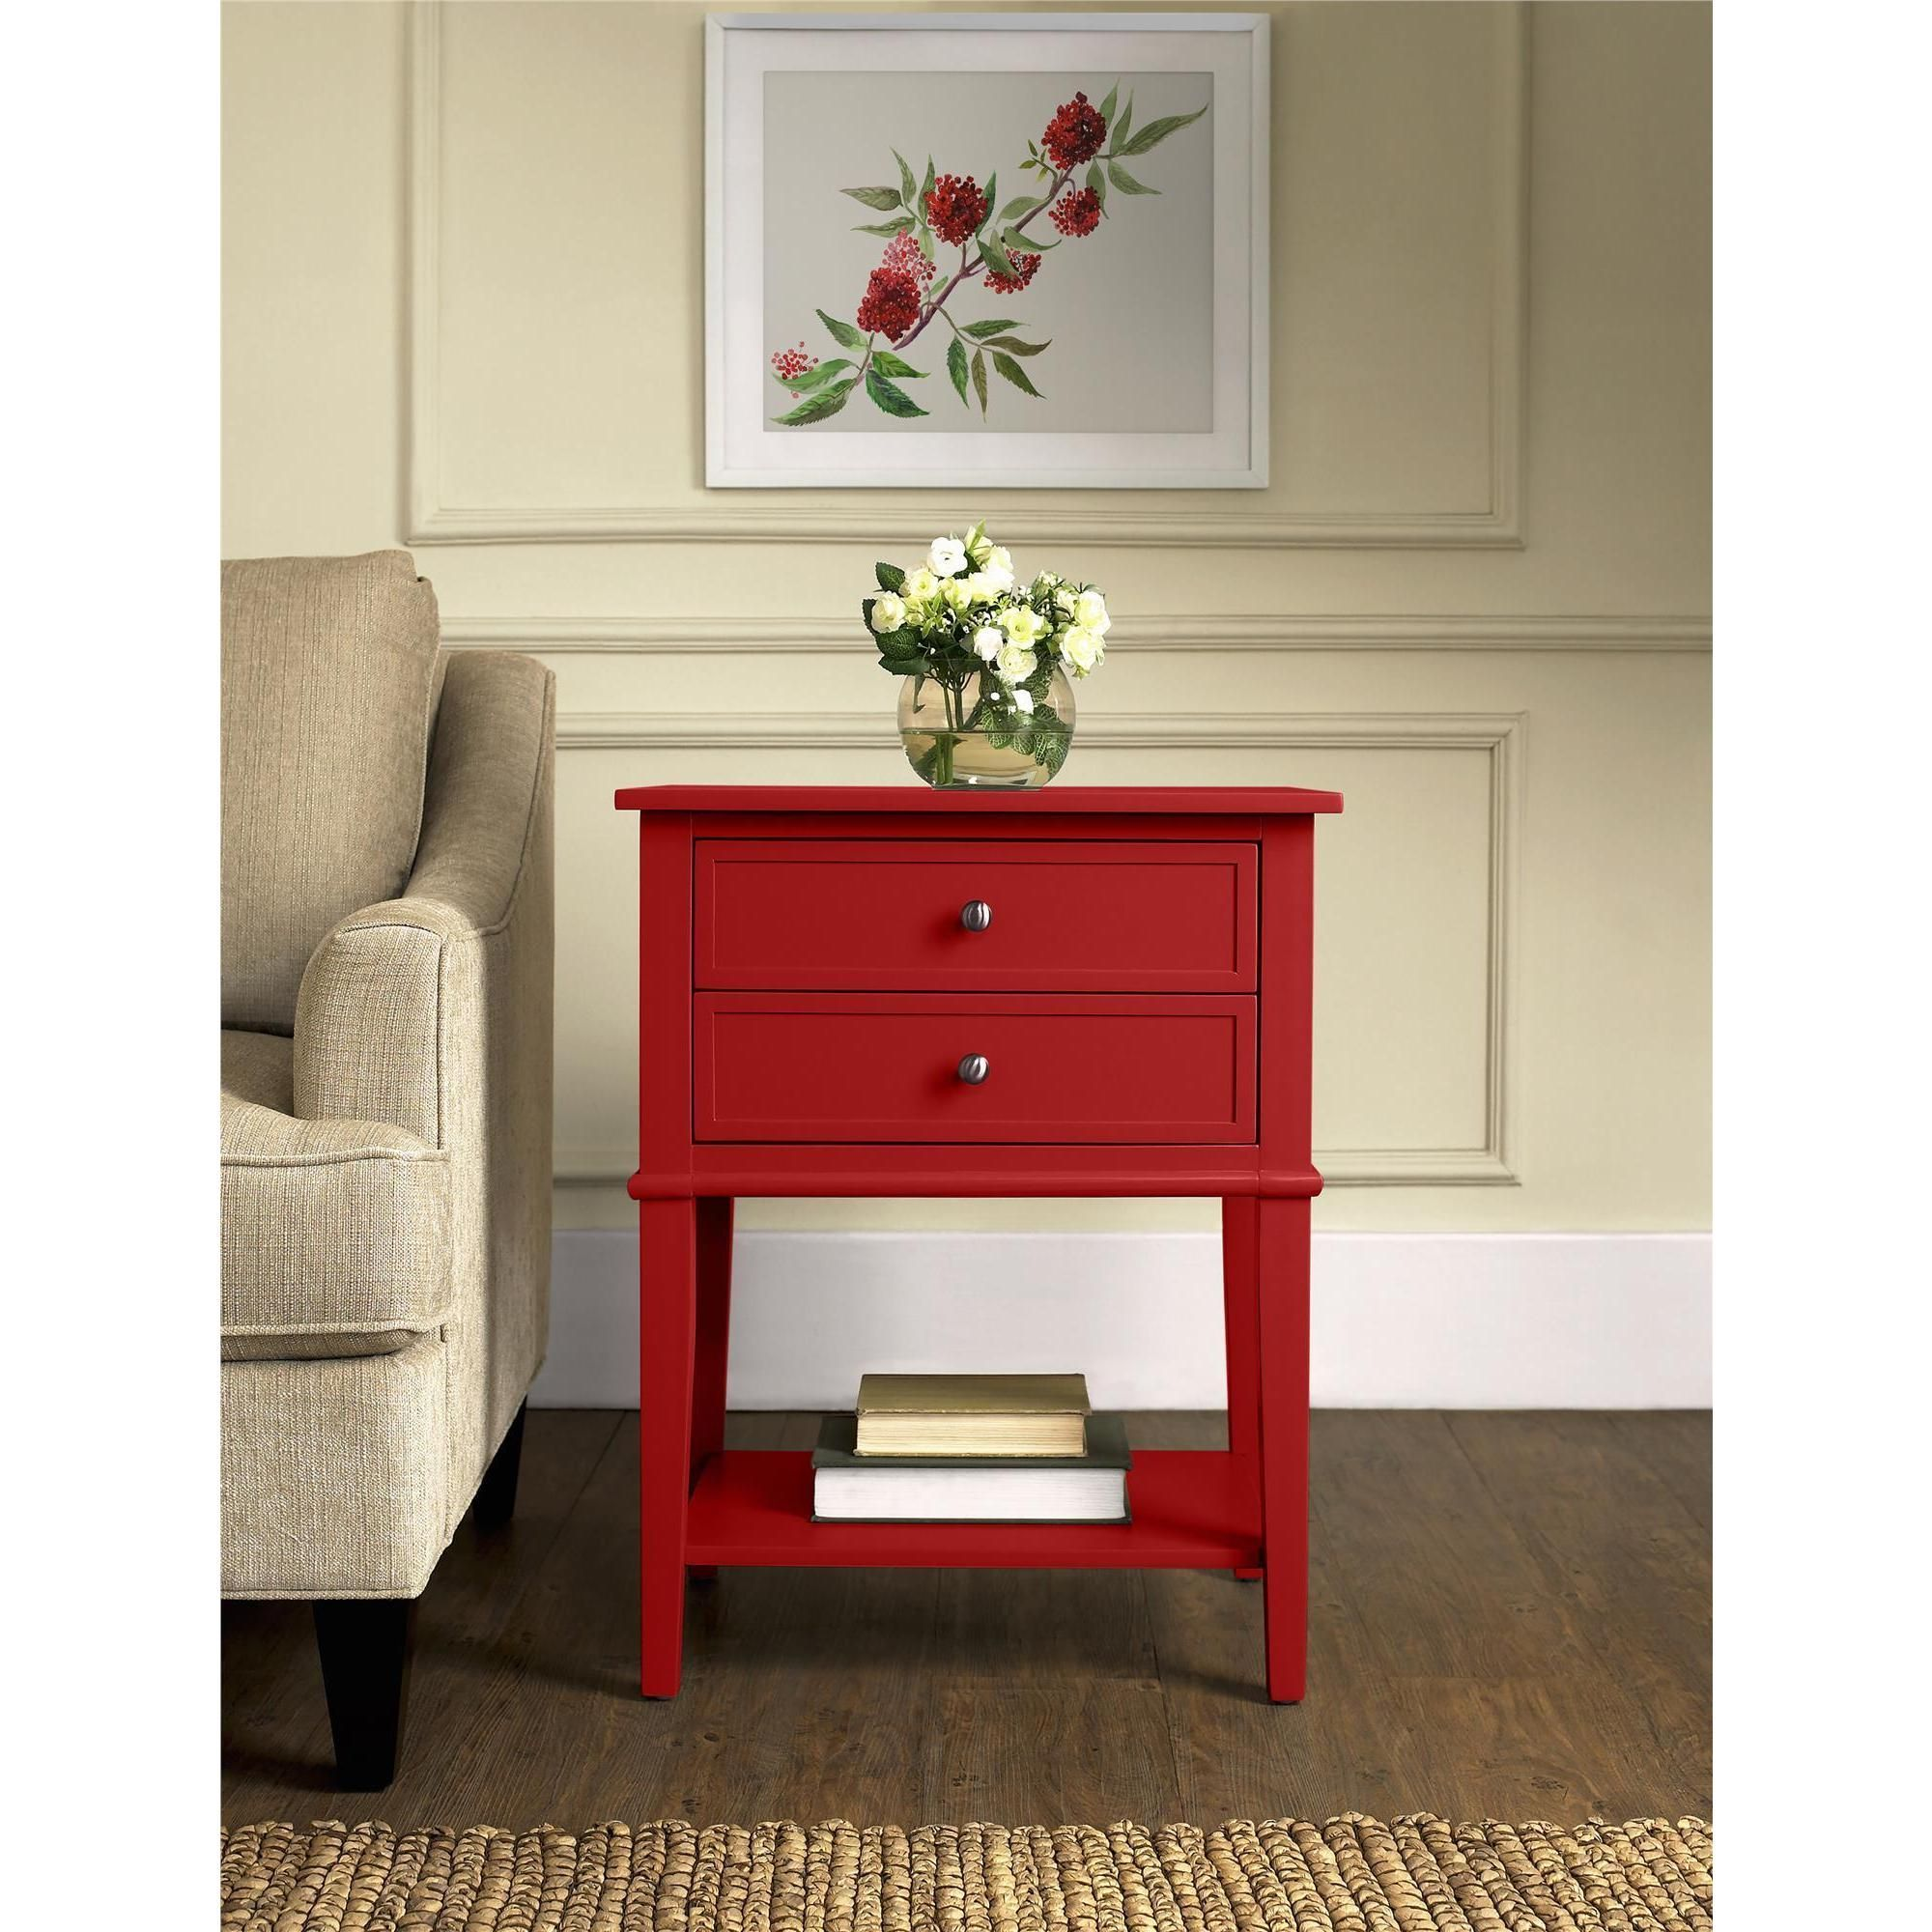 Order Furniture Online Free Shipping